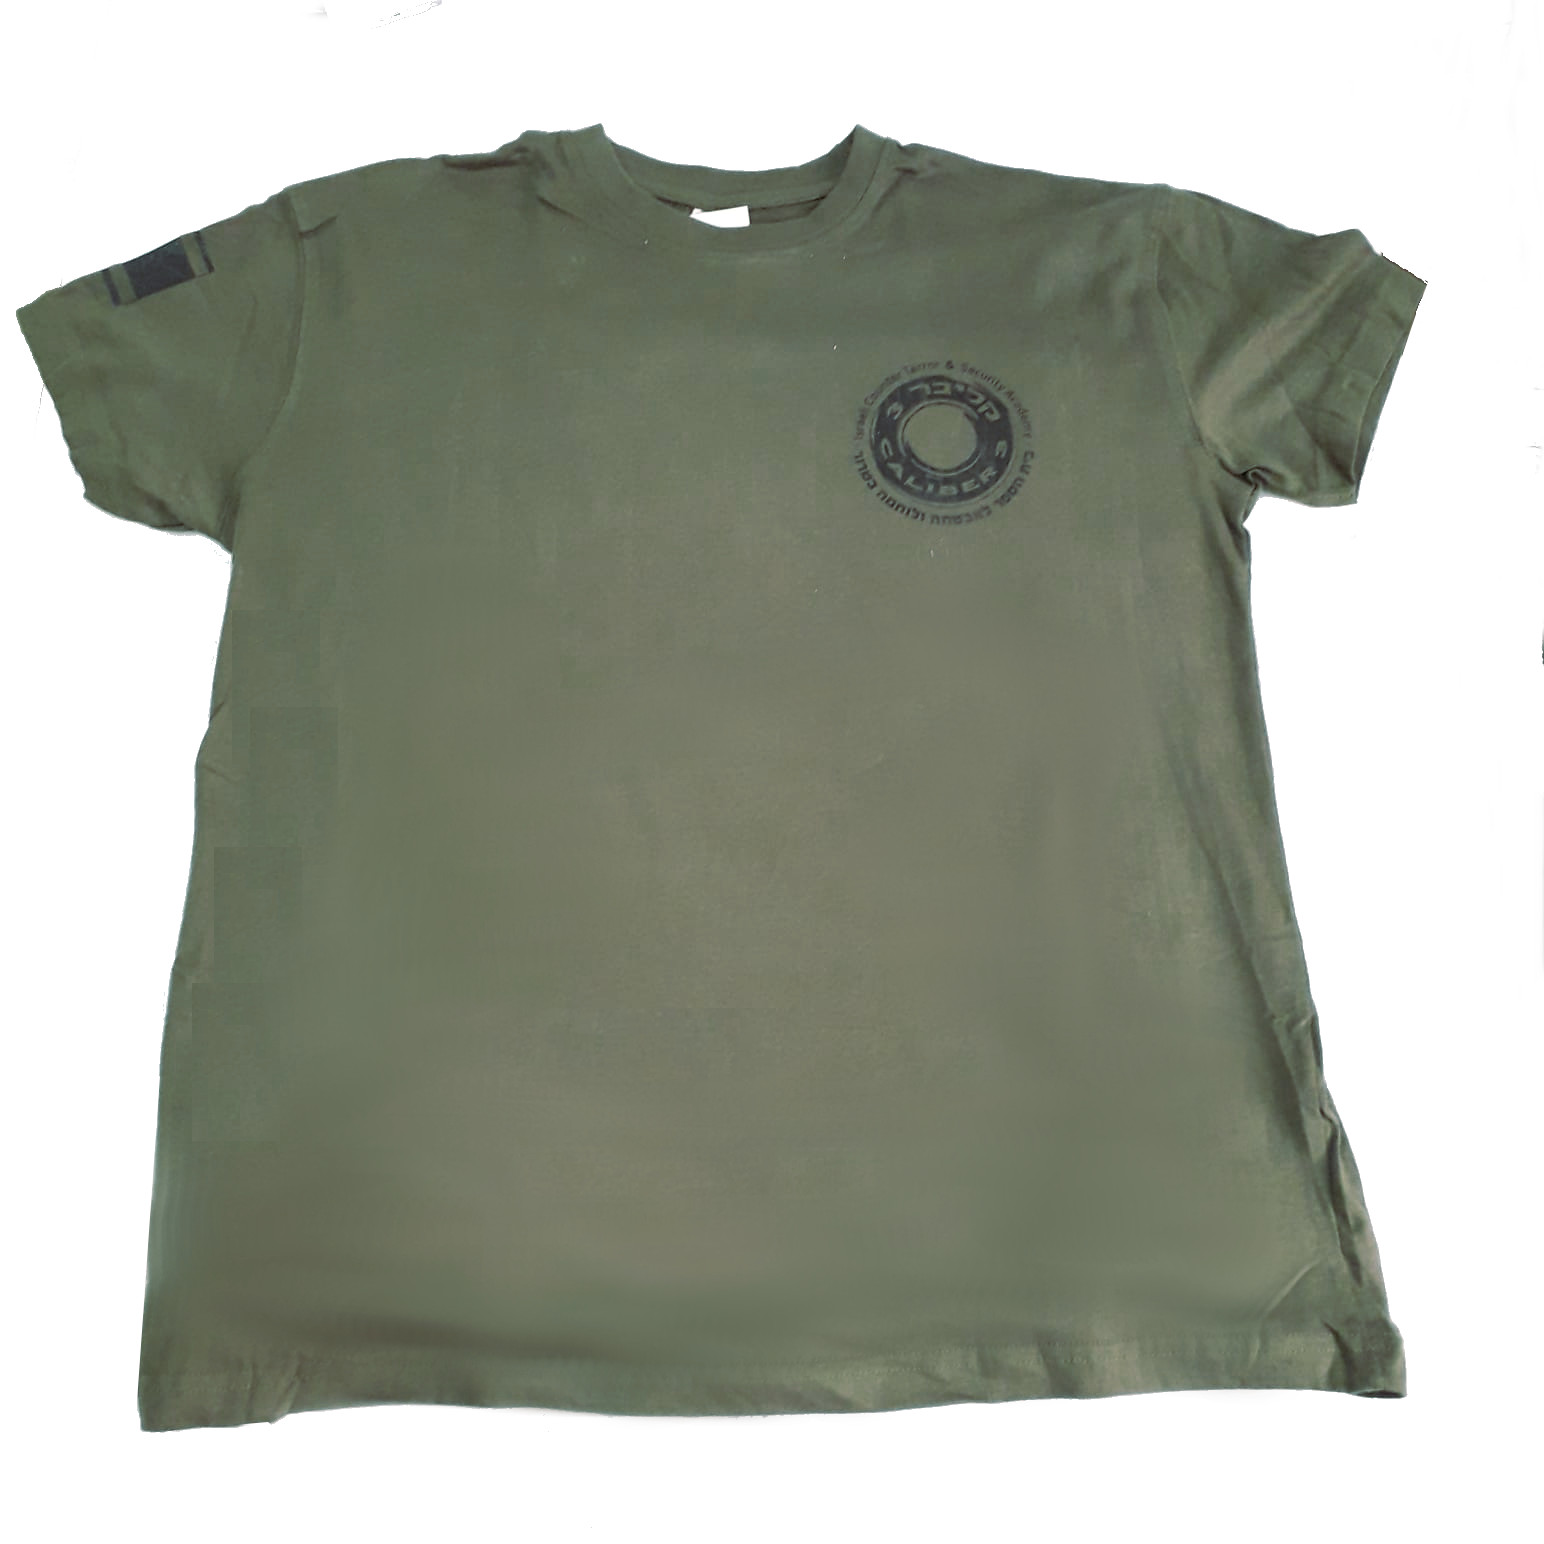 caliber 3 green cotton shirt.jpeg